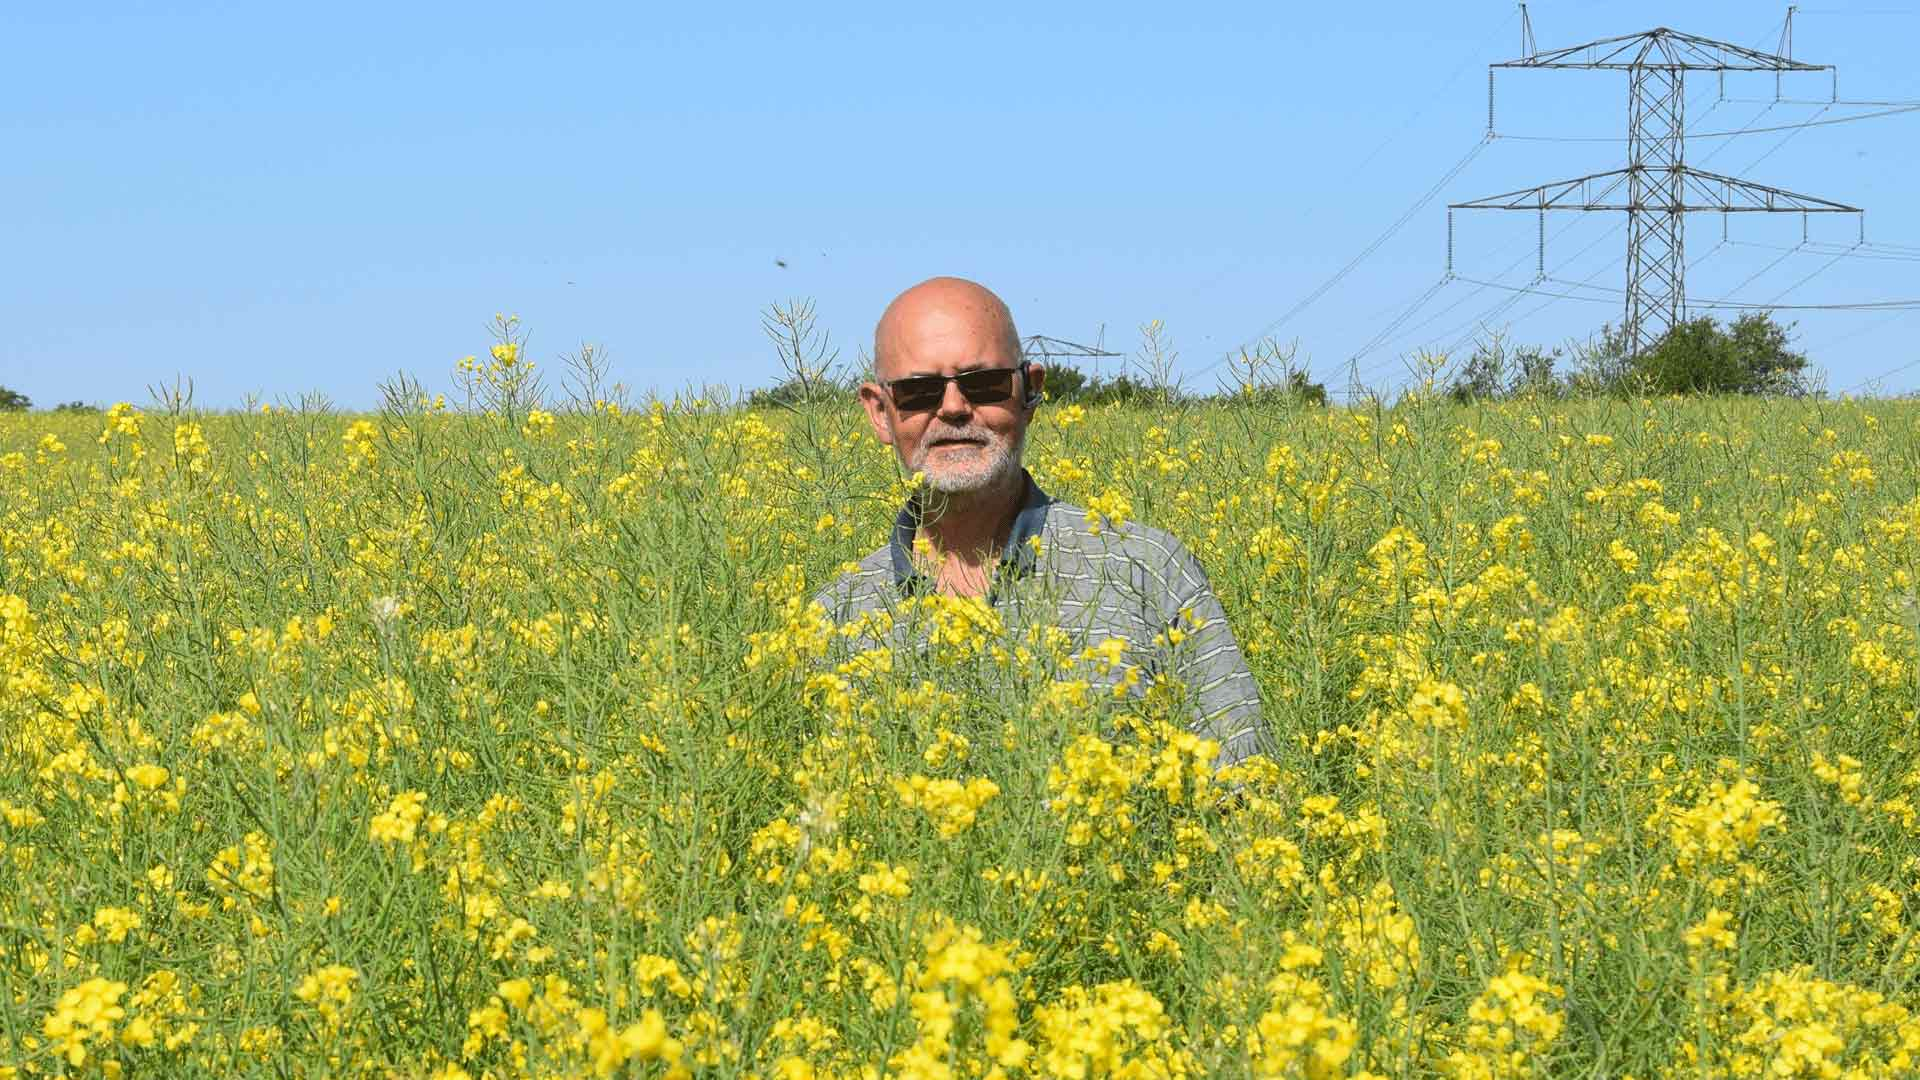 Here is Poul Soerensen in one of his rape fields.